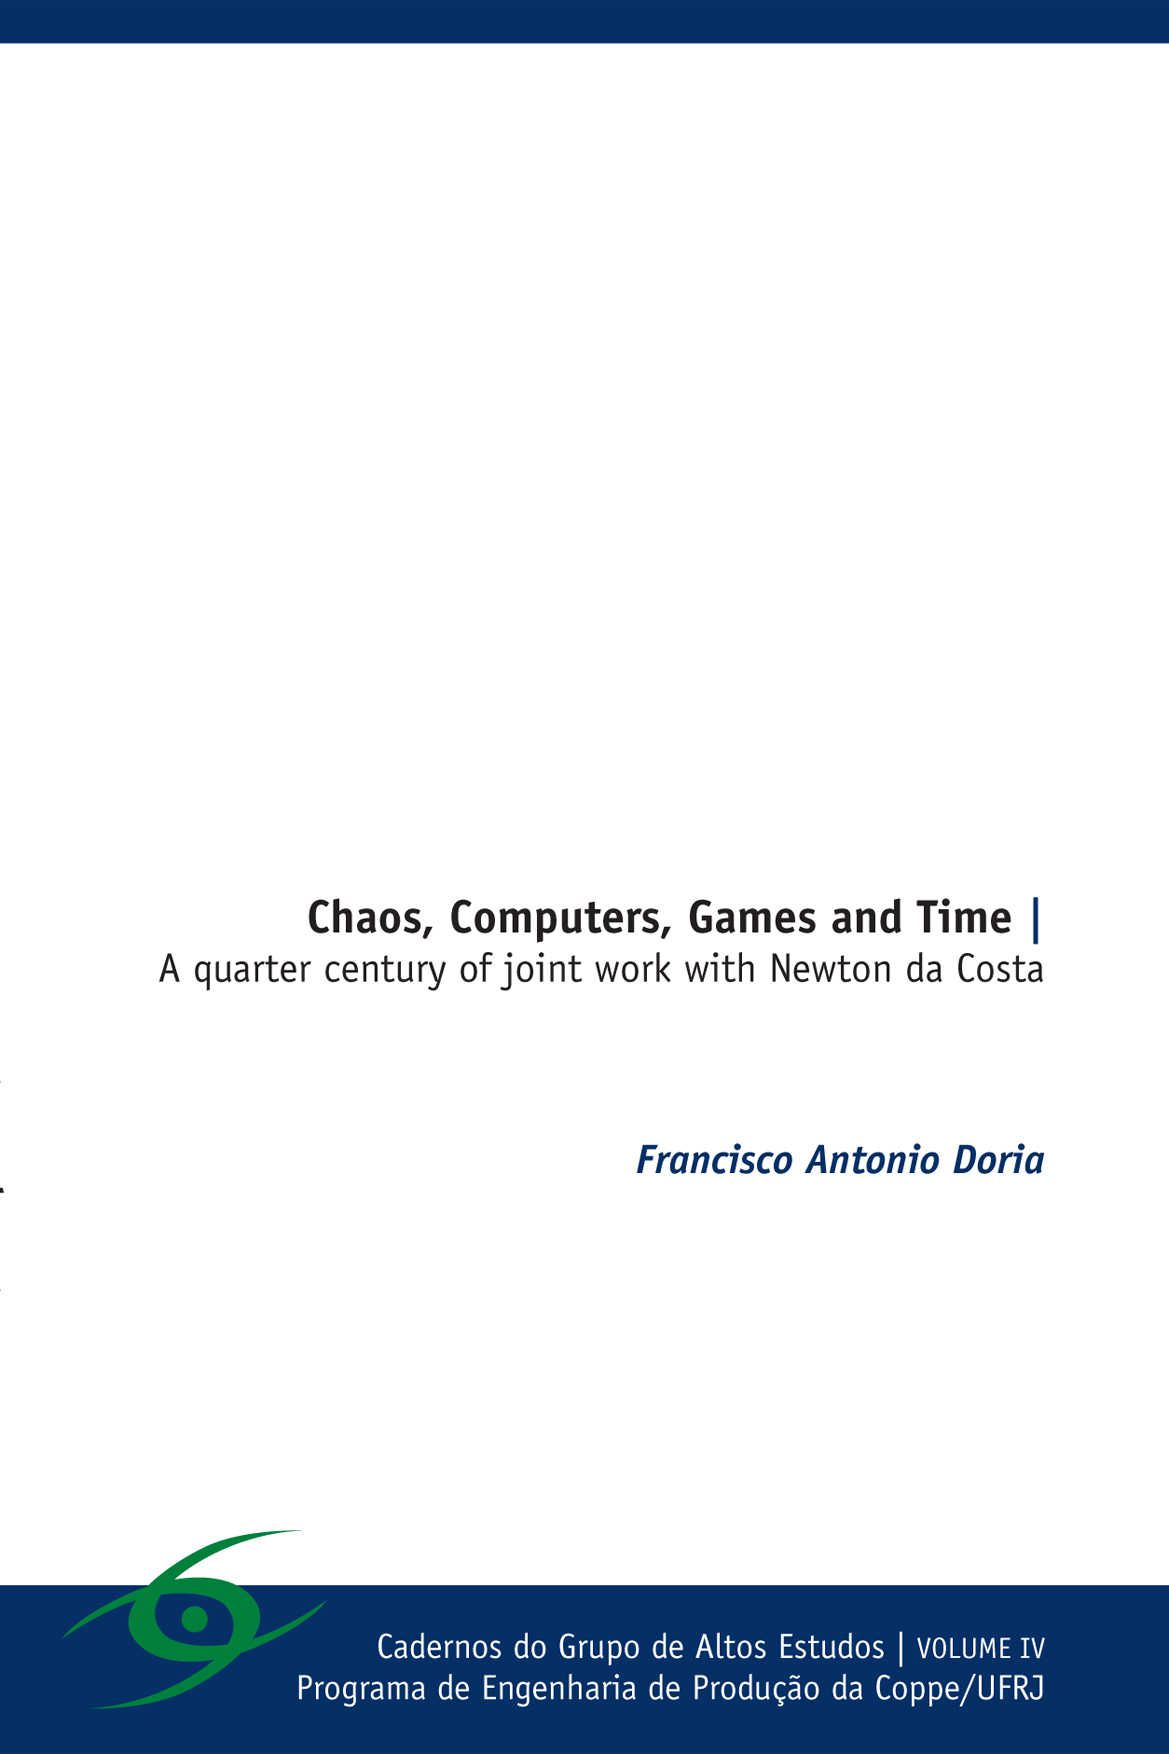 Chaos, Computers, Games and Time: A quarter century of joint work with Newton da Costa